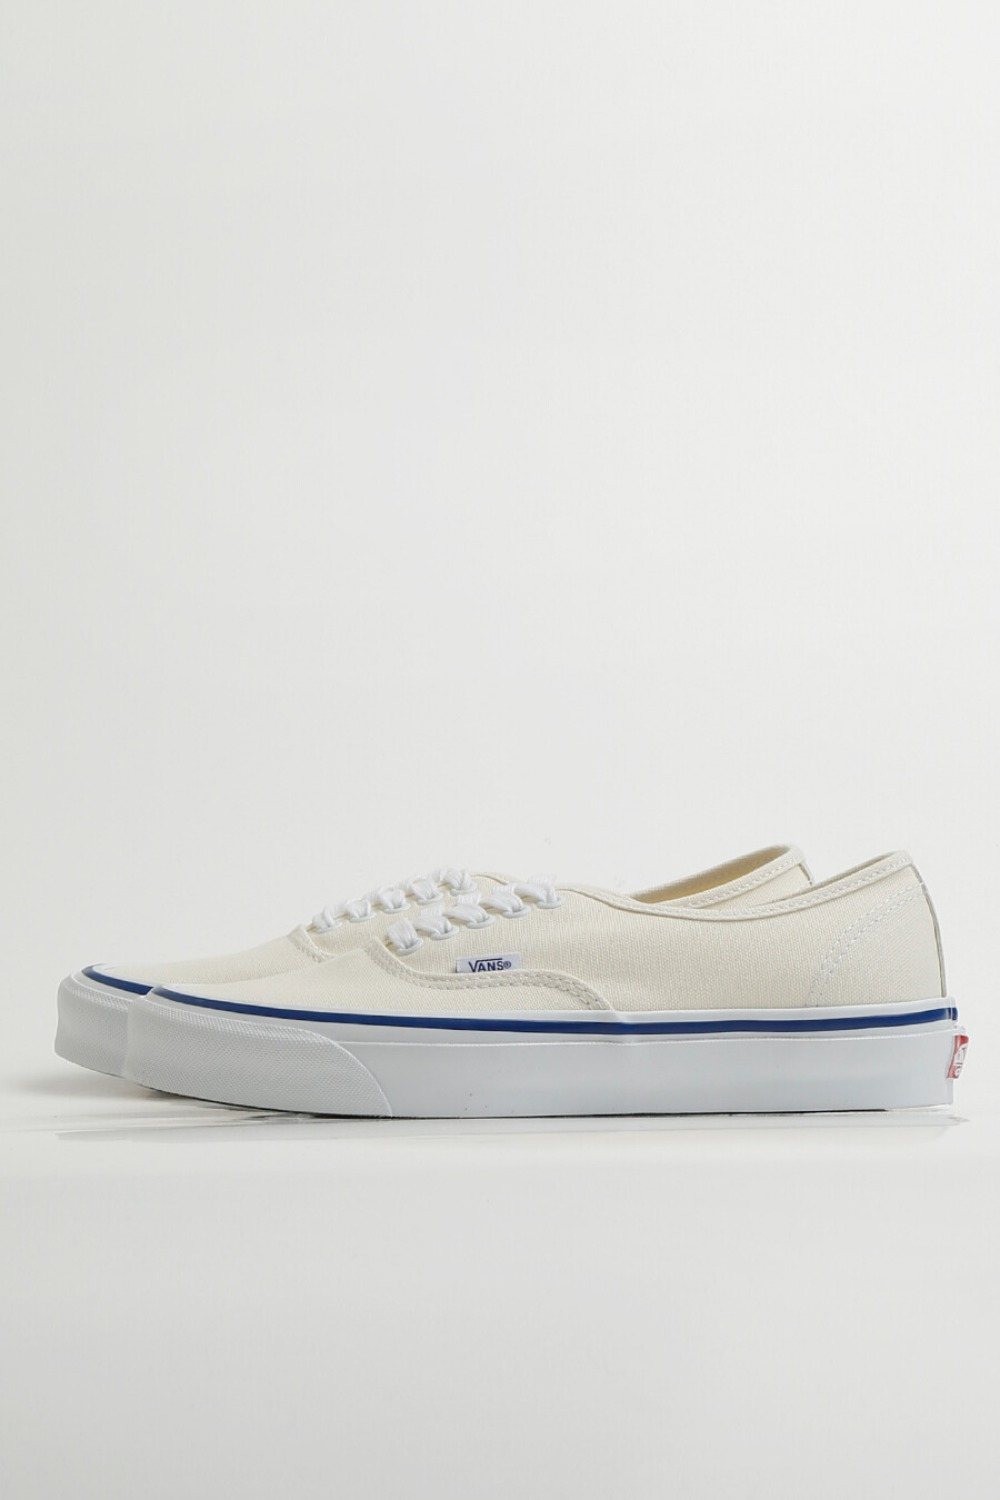 OG AUTHENTIC LX(CANVAS)CLASSIC WHITE